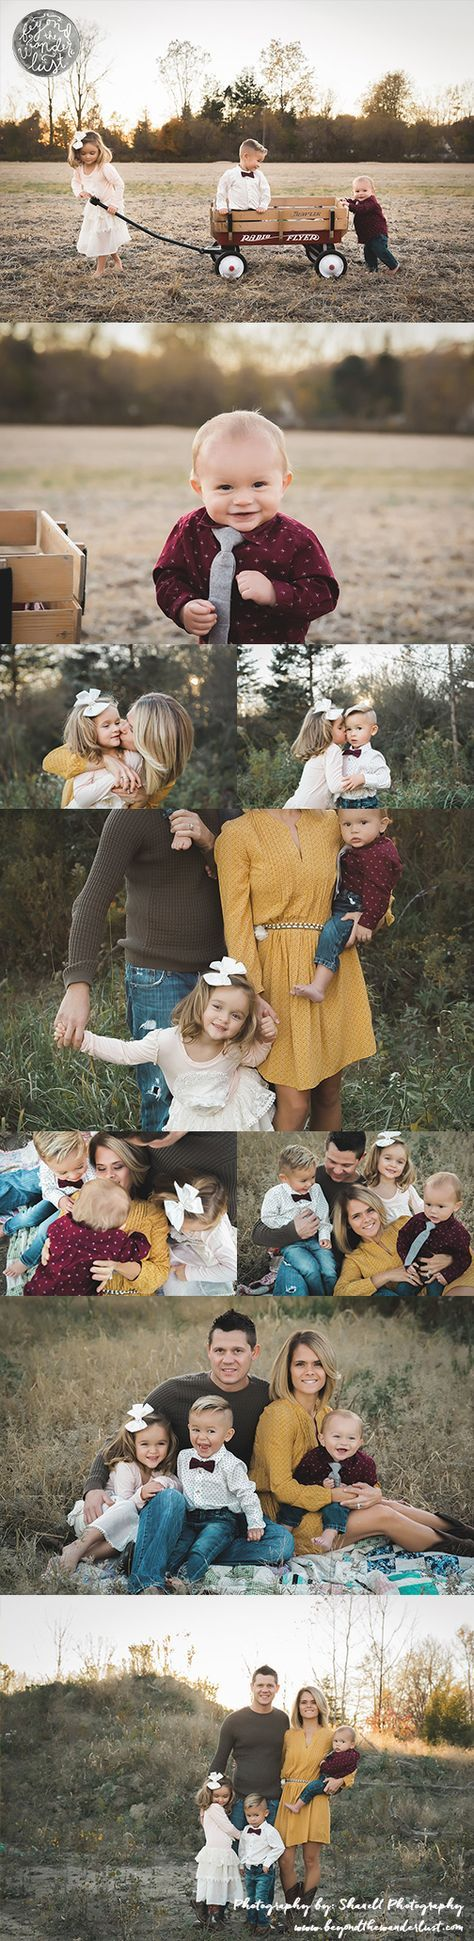 Fall family pictures, family of 5 poses, what to wear for family pictures, family style, family picture ideas